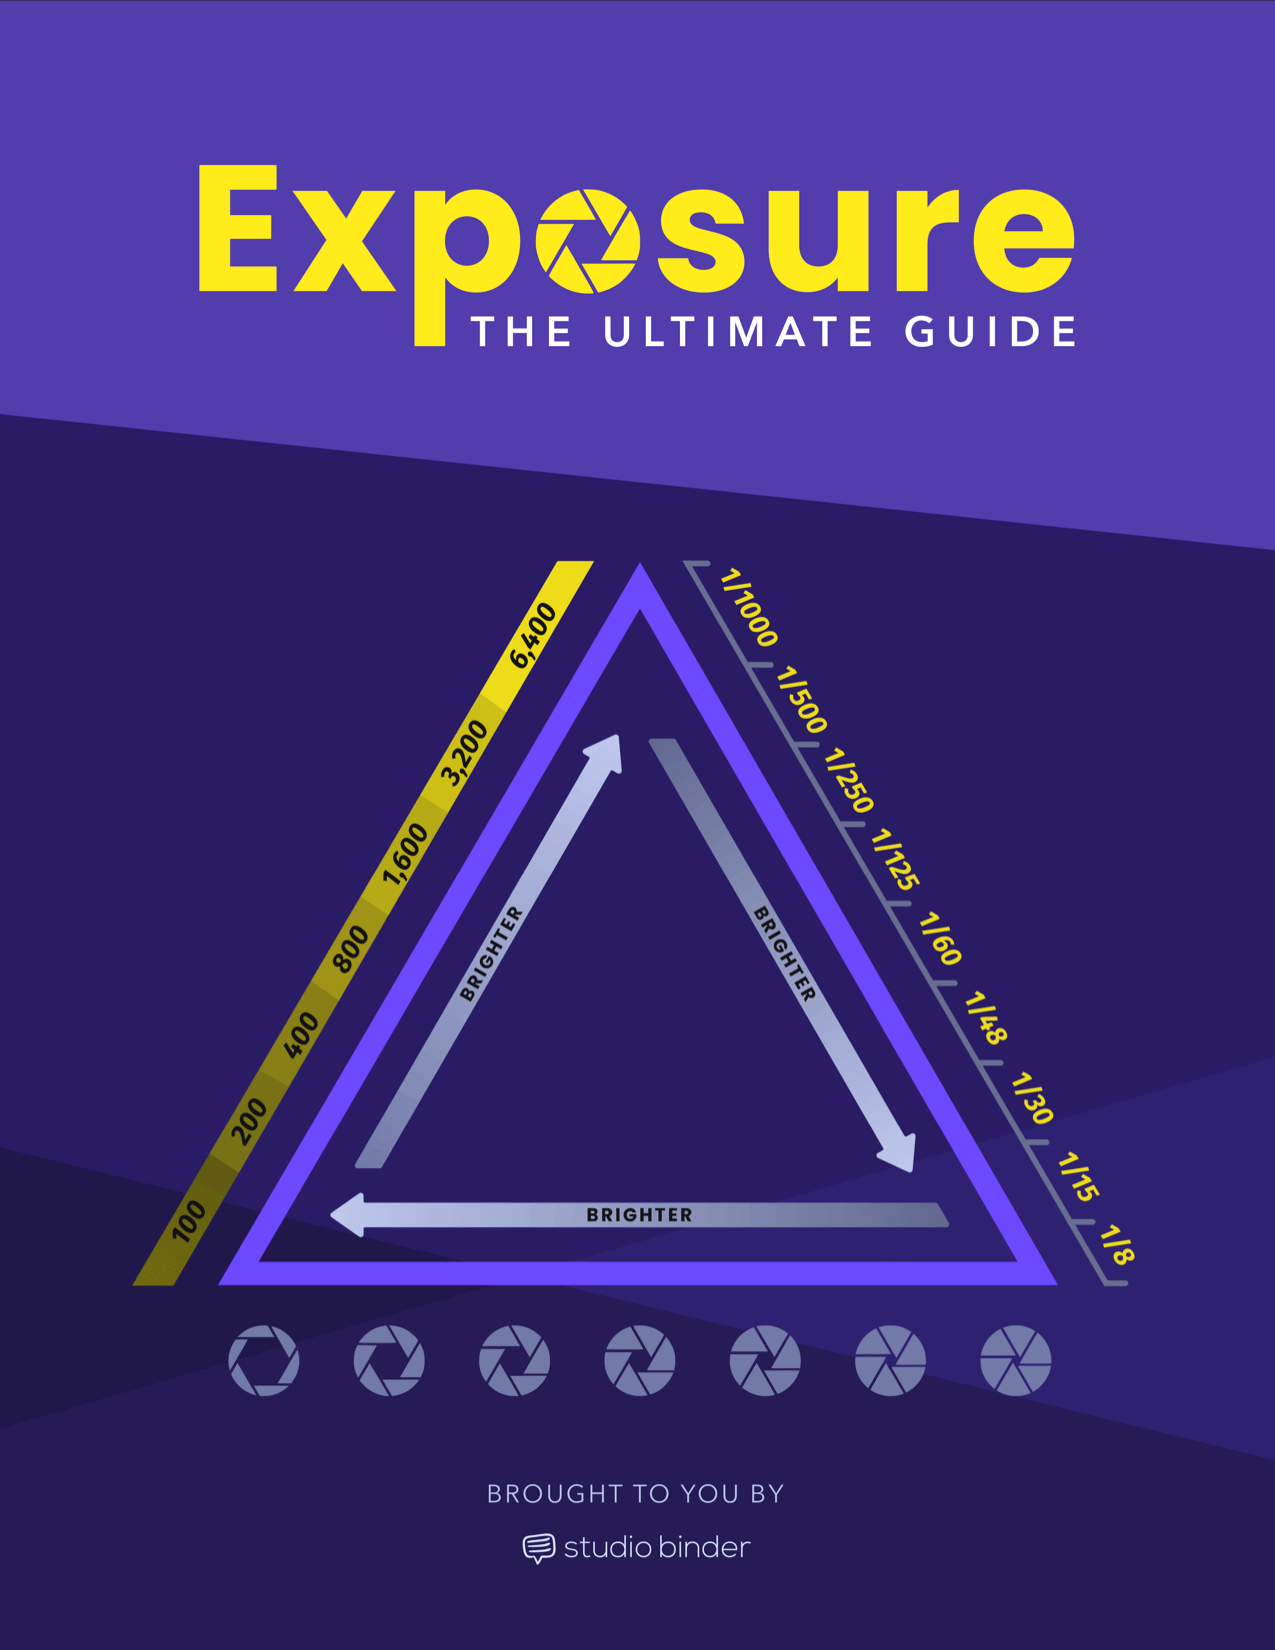 Exposure Triangle Ebook - The Ultimate Guide - Cover